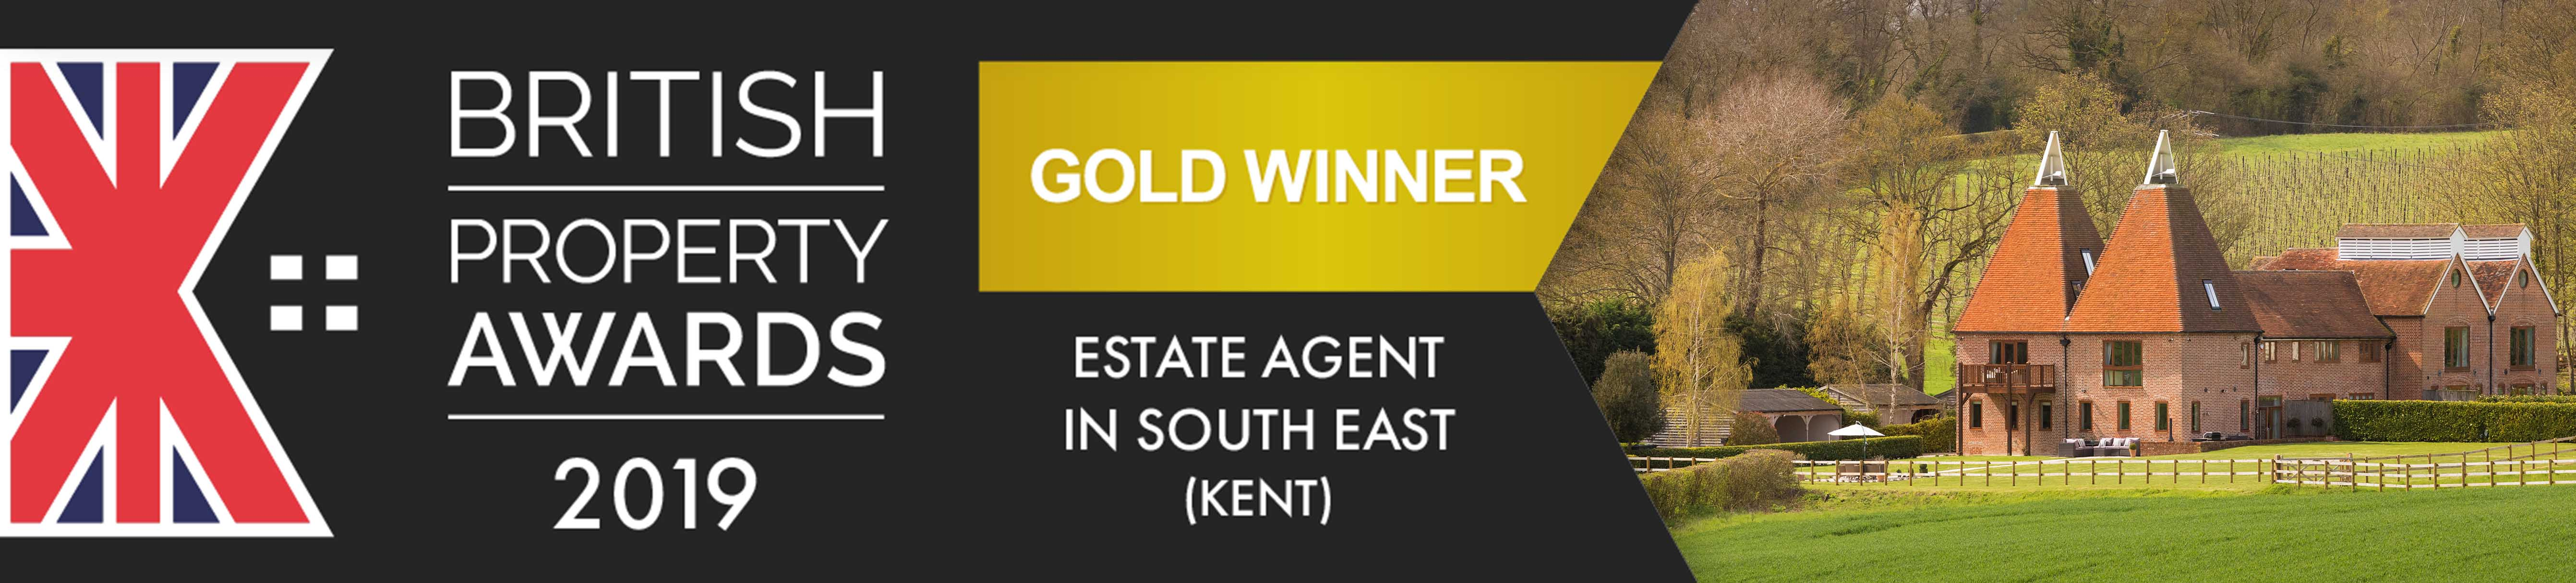 south_east_kent_banner